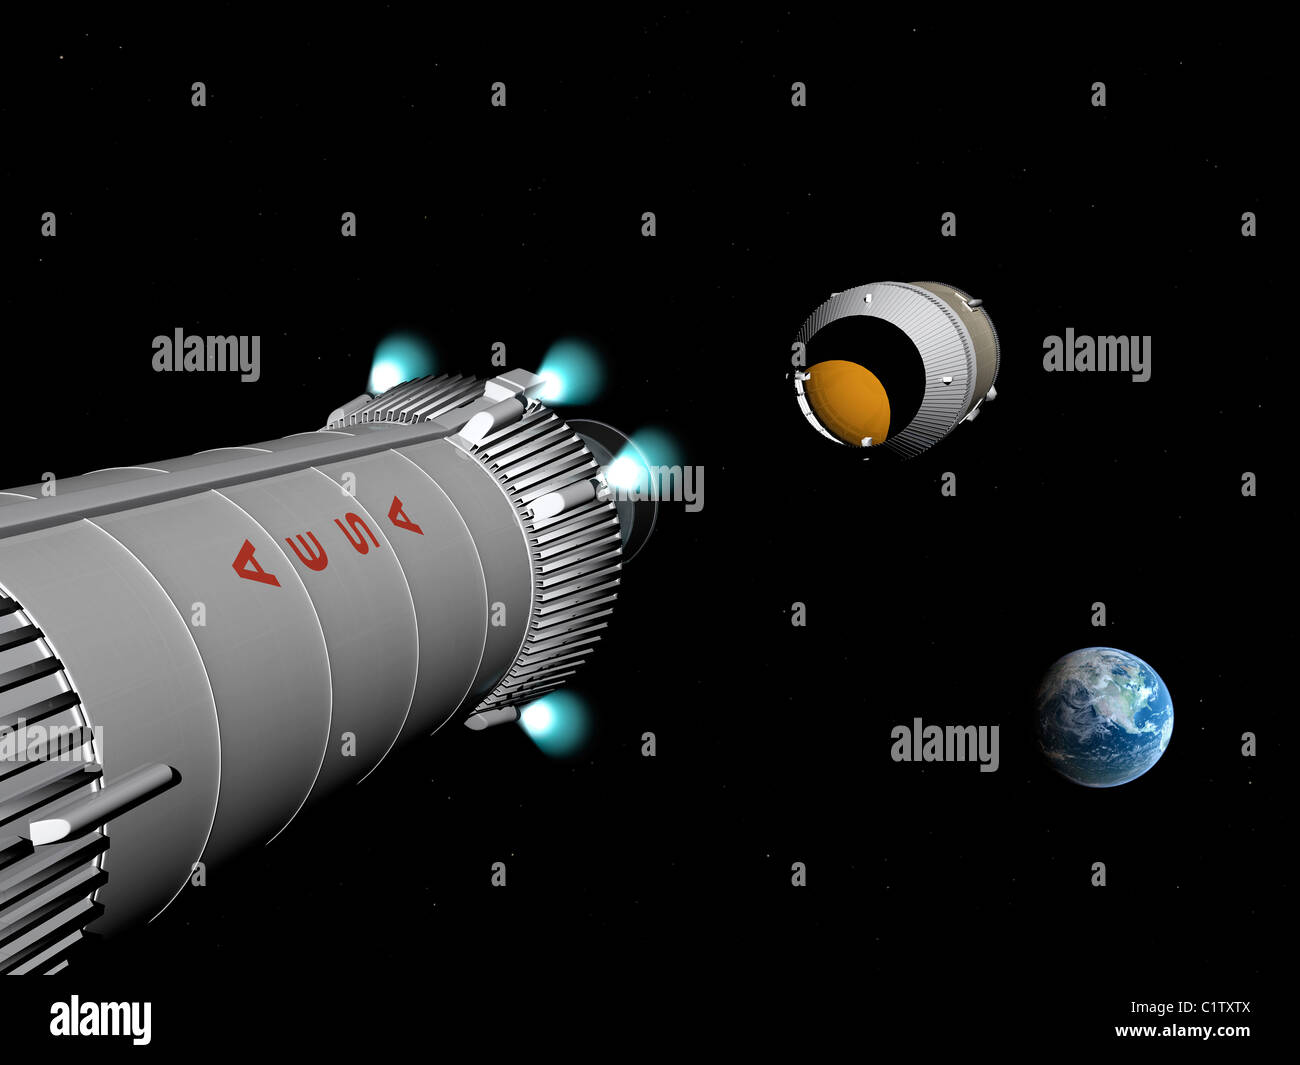 Phobos mission rocket releases spent propellant stage. - Stock Image